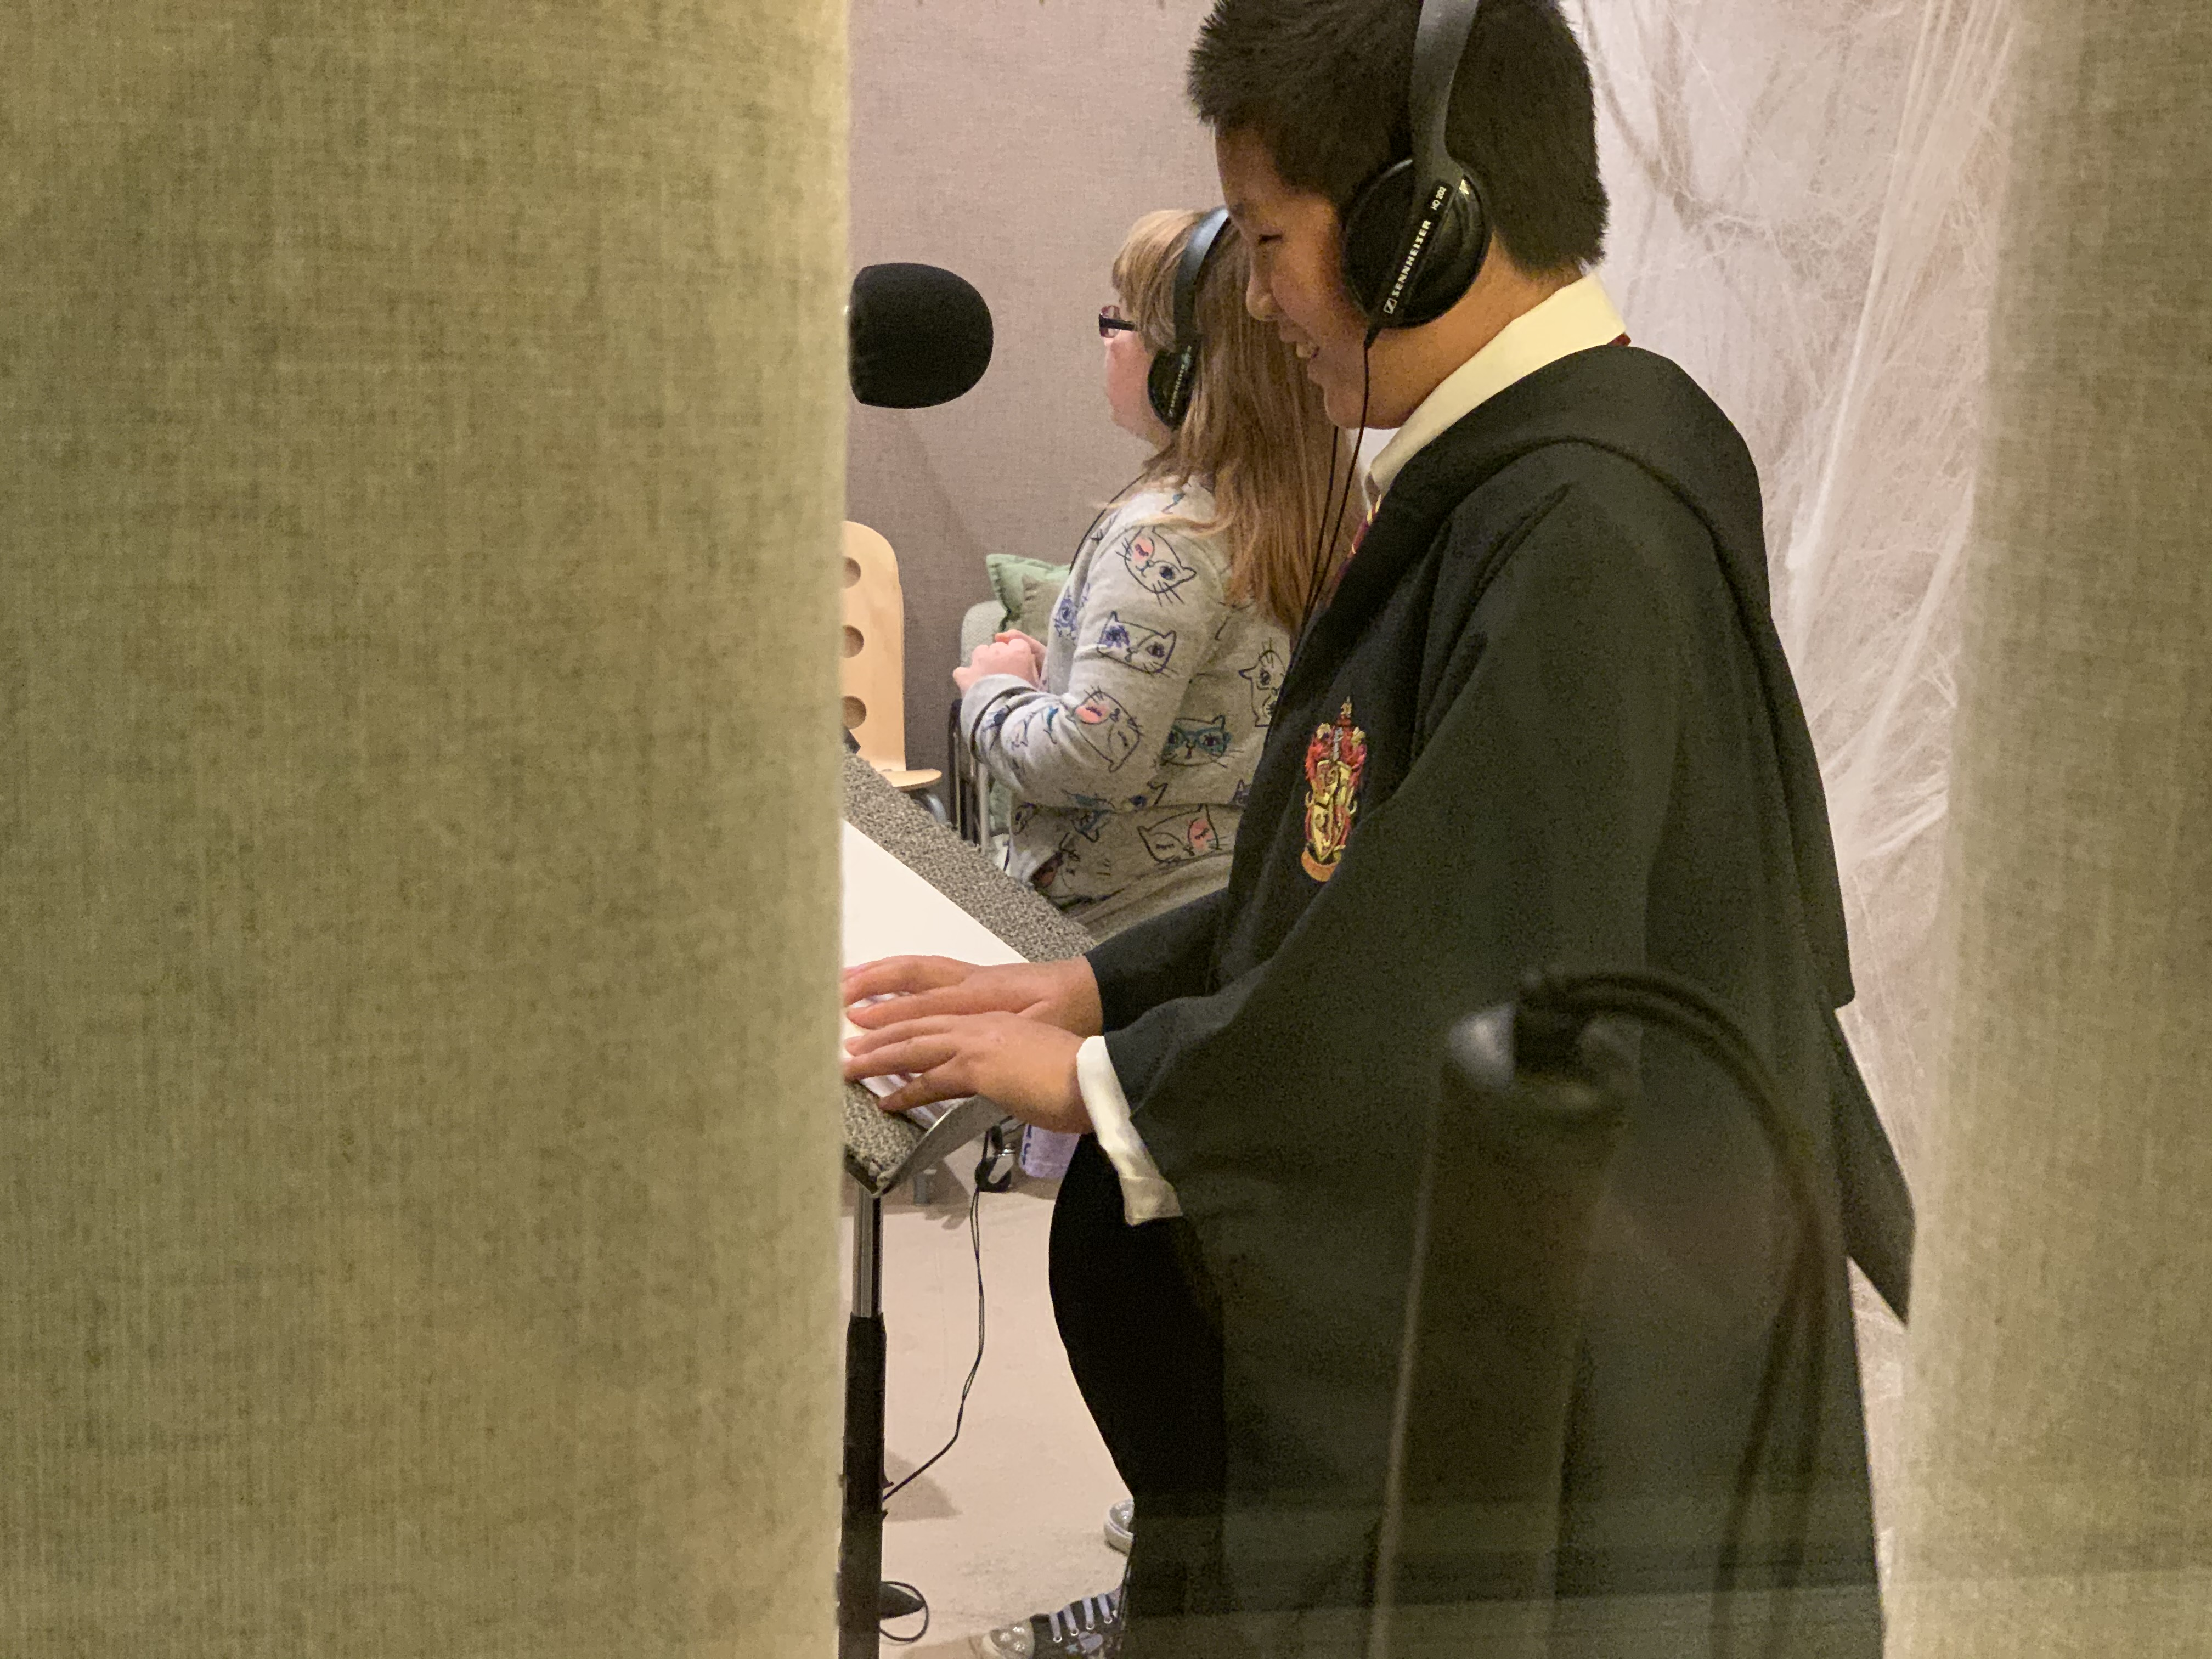 Close-up of two youth patrons speaking into microphones in a recording studio, one reading lines in braille and the other in large print.